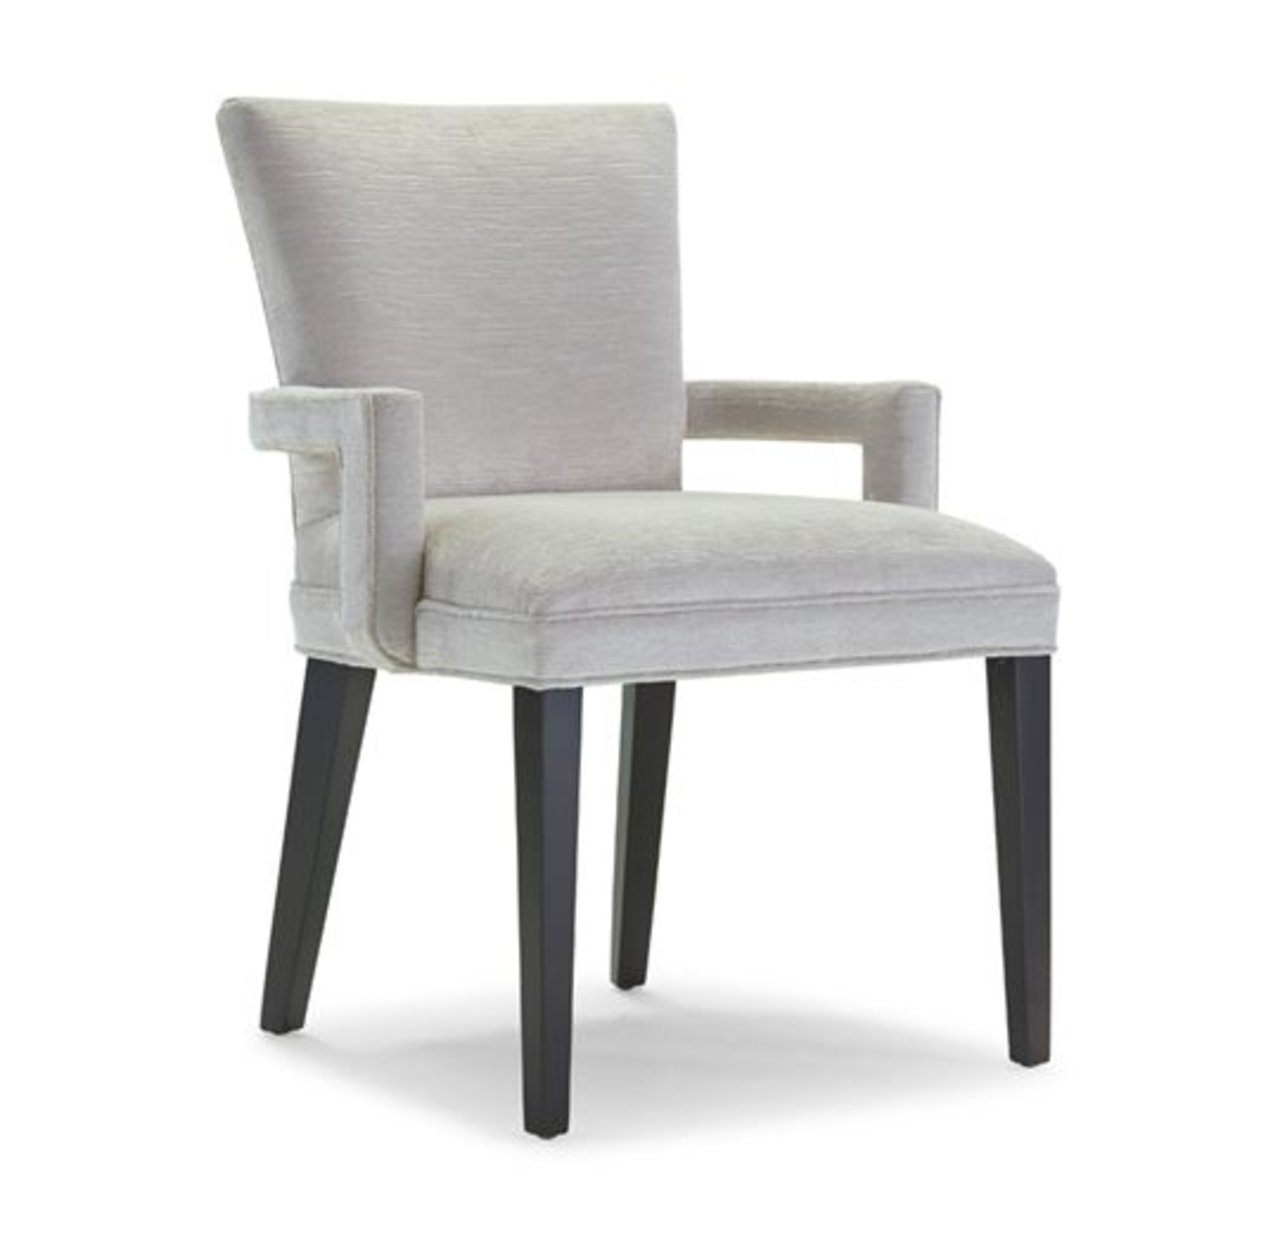 The expert 39 s guide to picking out new dining chairs the for Latest dining chairs